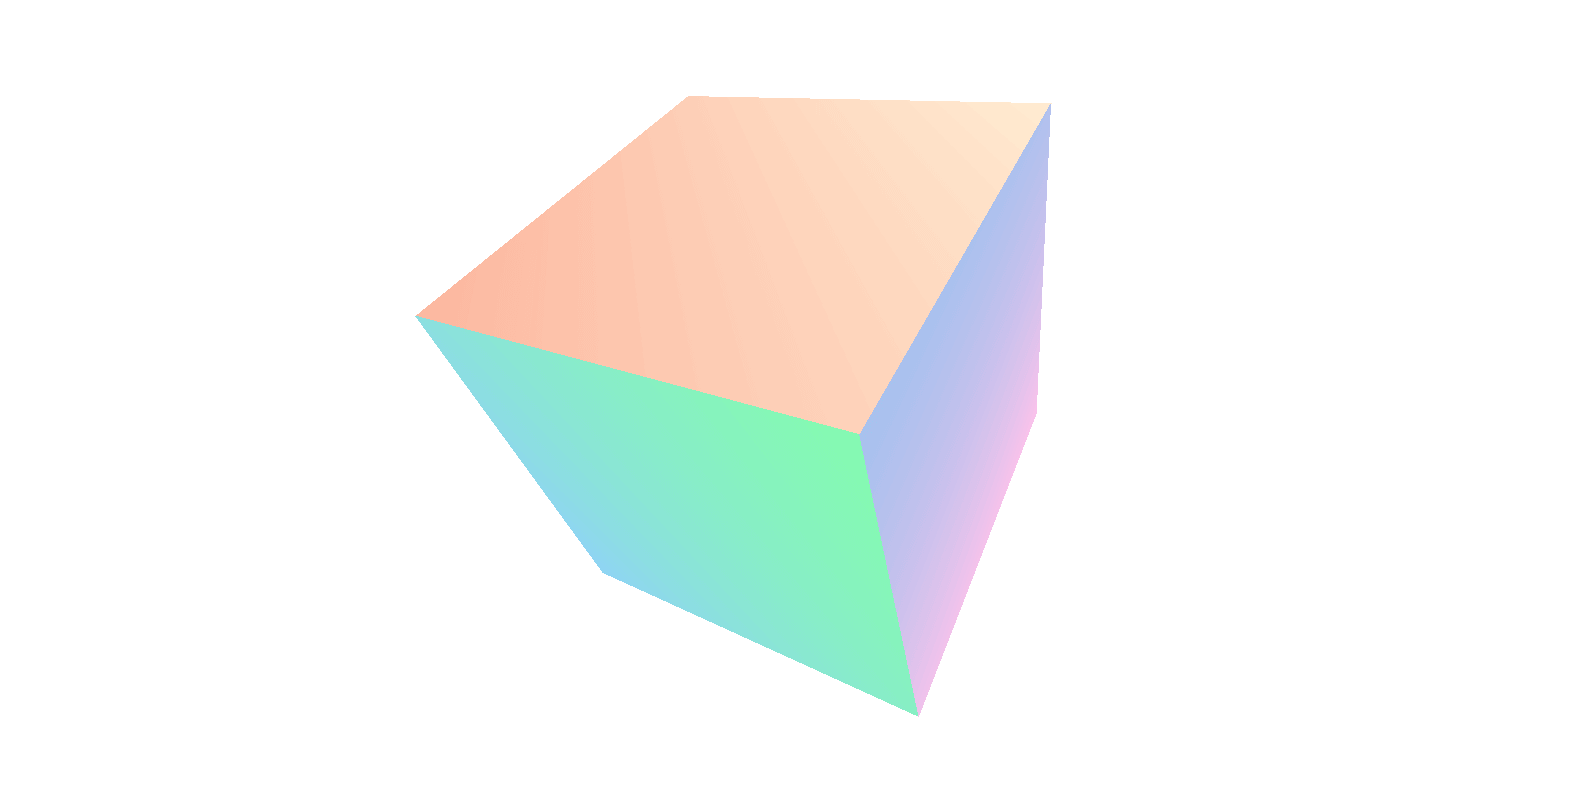 Cube rotated in 3D with a different pastel gradient background for each of its faces.